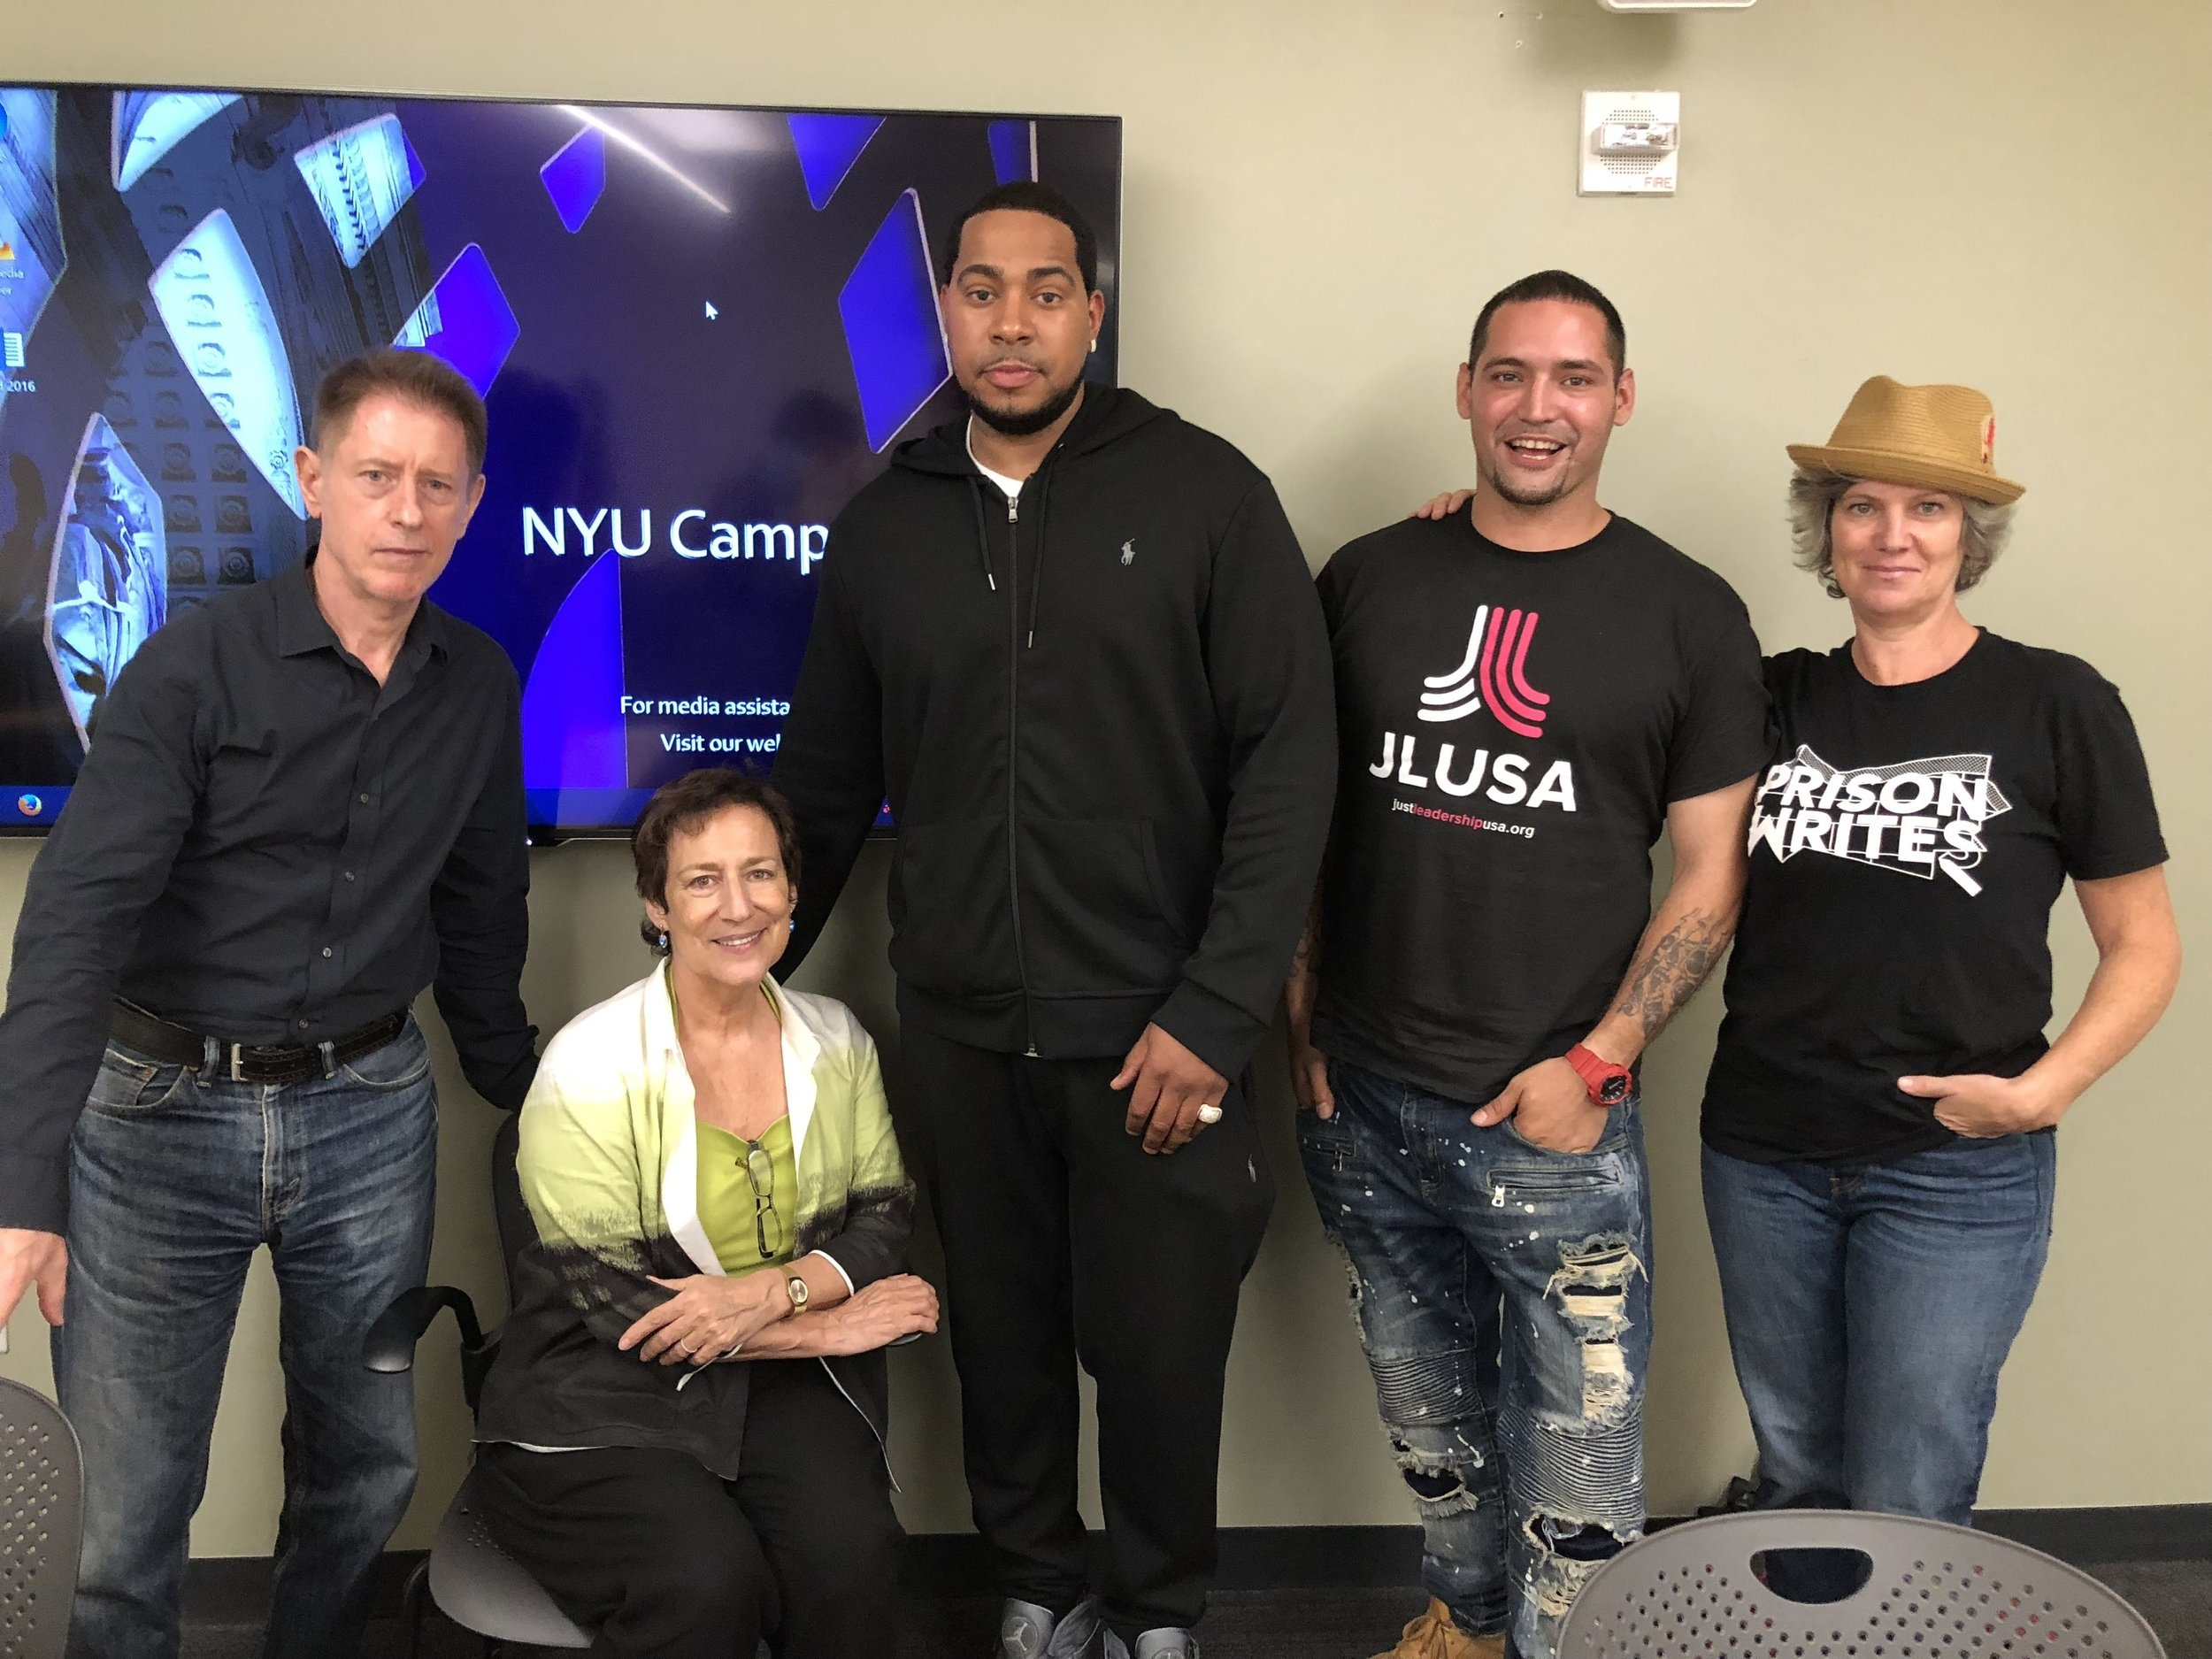 PW visits NYU's Global Liberal Studies. l-r Tim Tomlinson (President New York Writers Workshop and Professor NYU GLS), Nina d'Alessandro (Professor NYU GLS), PW writers and invited speakers Justin Corney and Rafael Carrera, and PW Executive Director Jessica Hall.